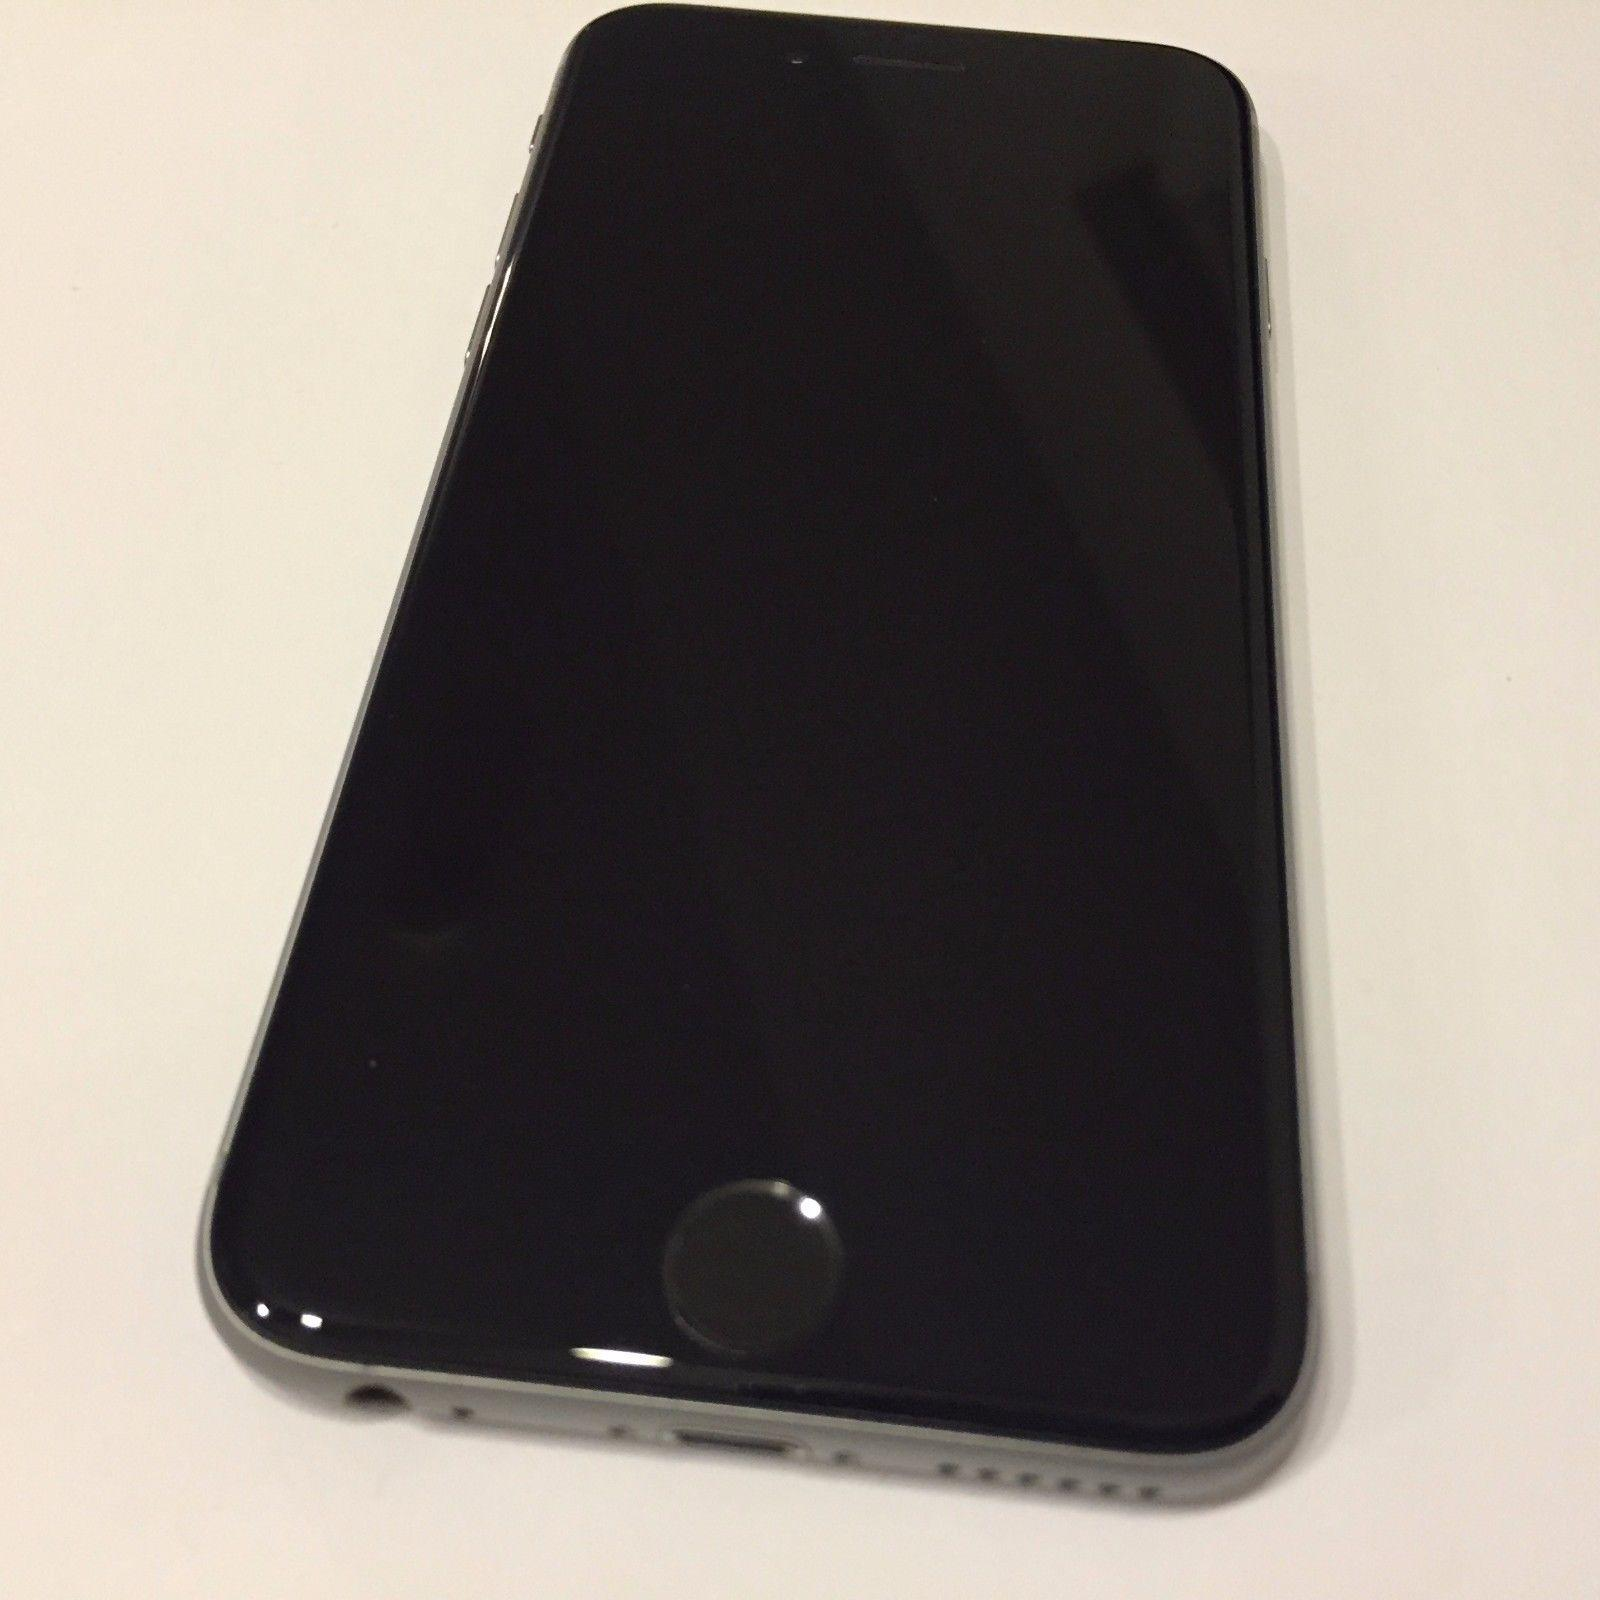 As-Is iPhone 6S 16GB - NO POWER - UNTESTED - UNKNOWN CARRIER - WATER DAMAGED